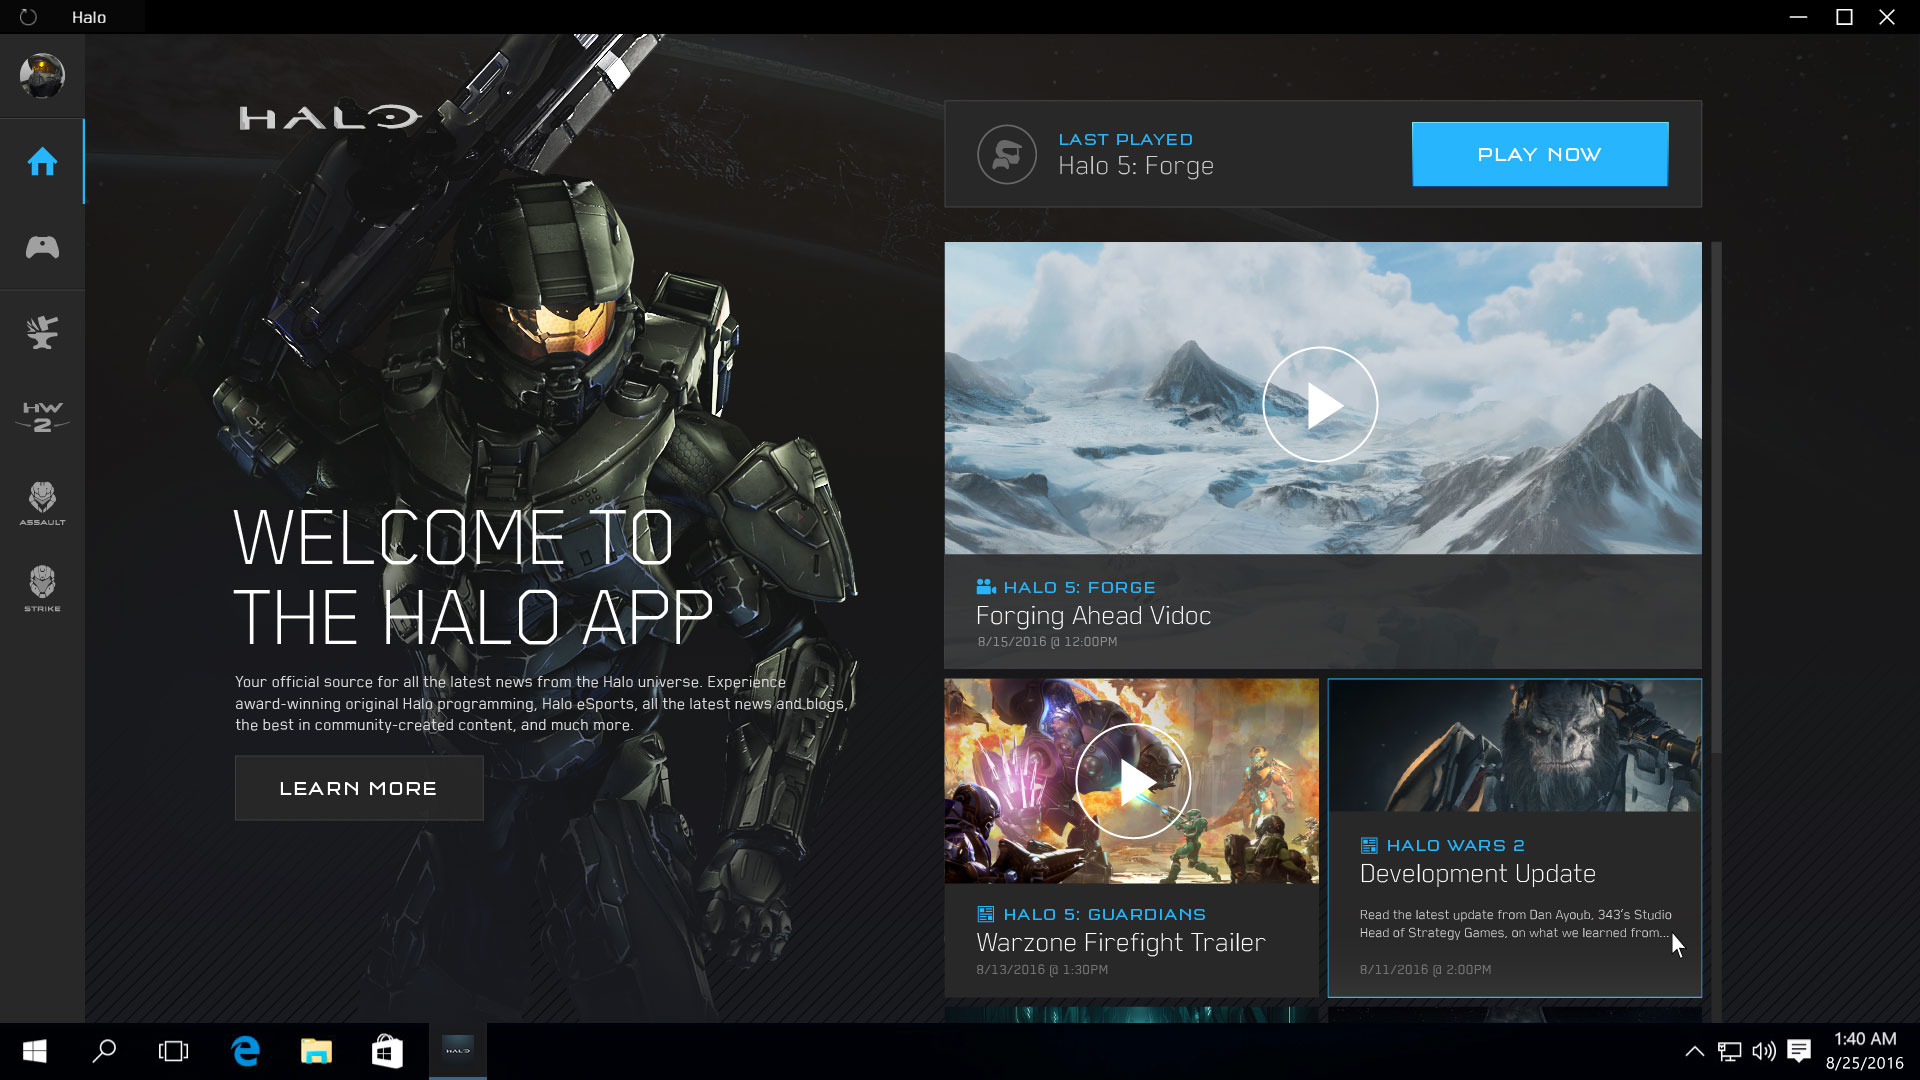 Microsoft will soon release their Halo App for Windows 10 PC